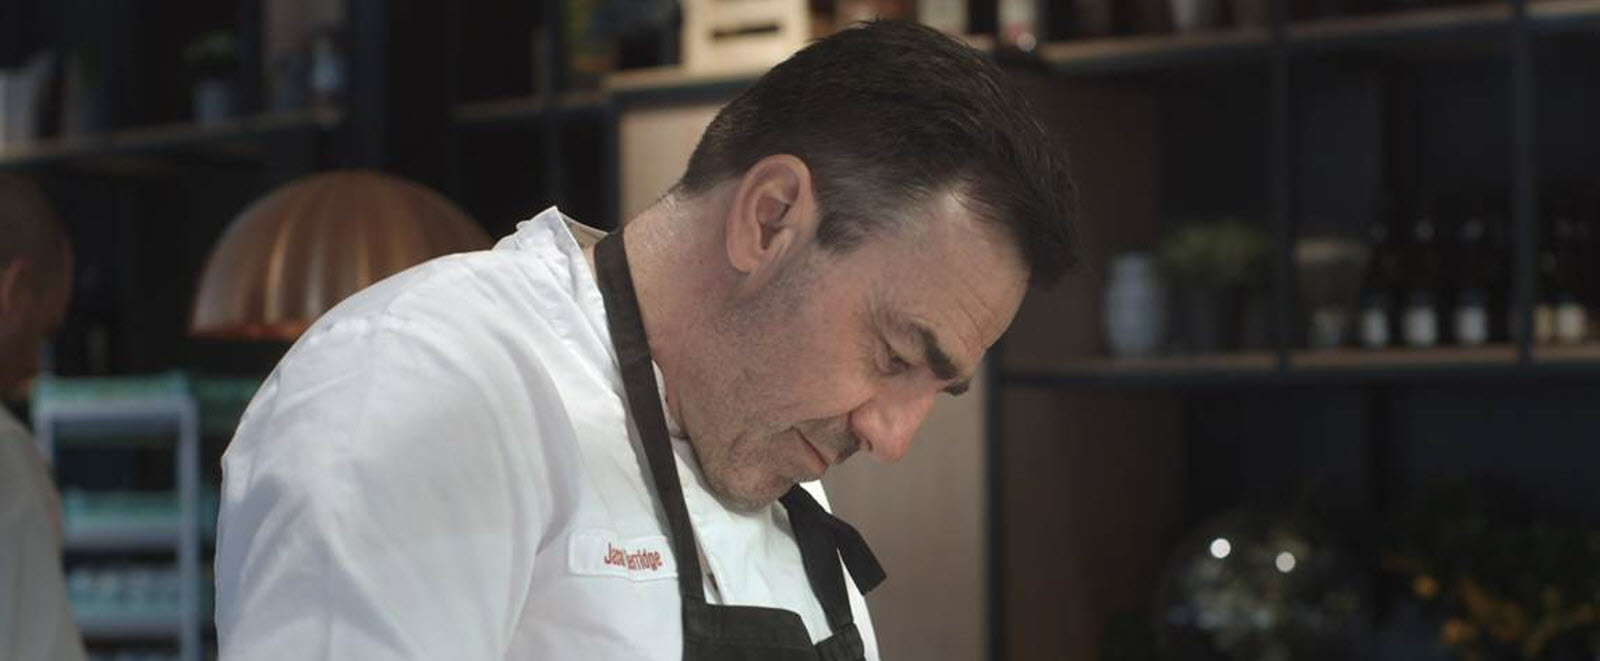 Jason Berridge, Chef